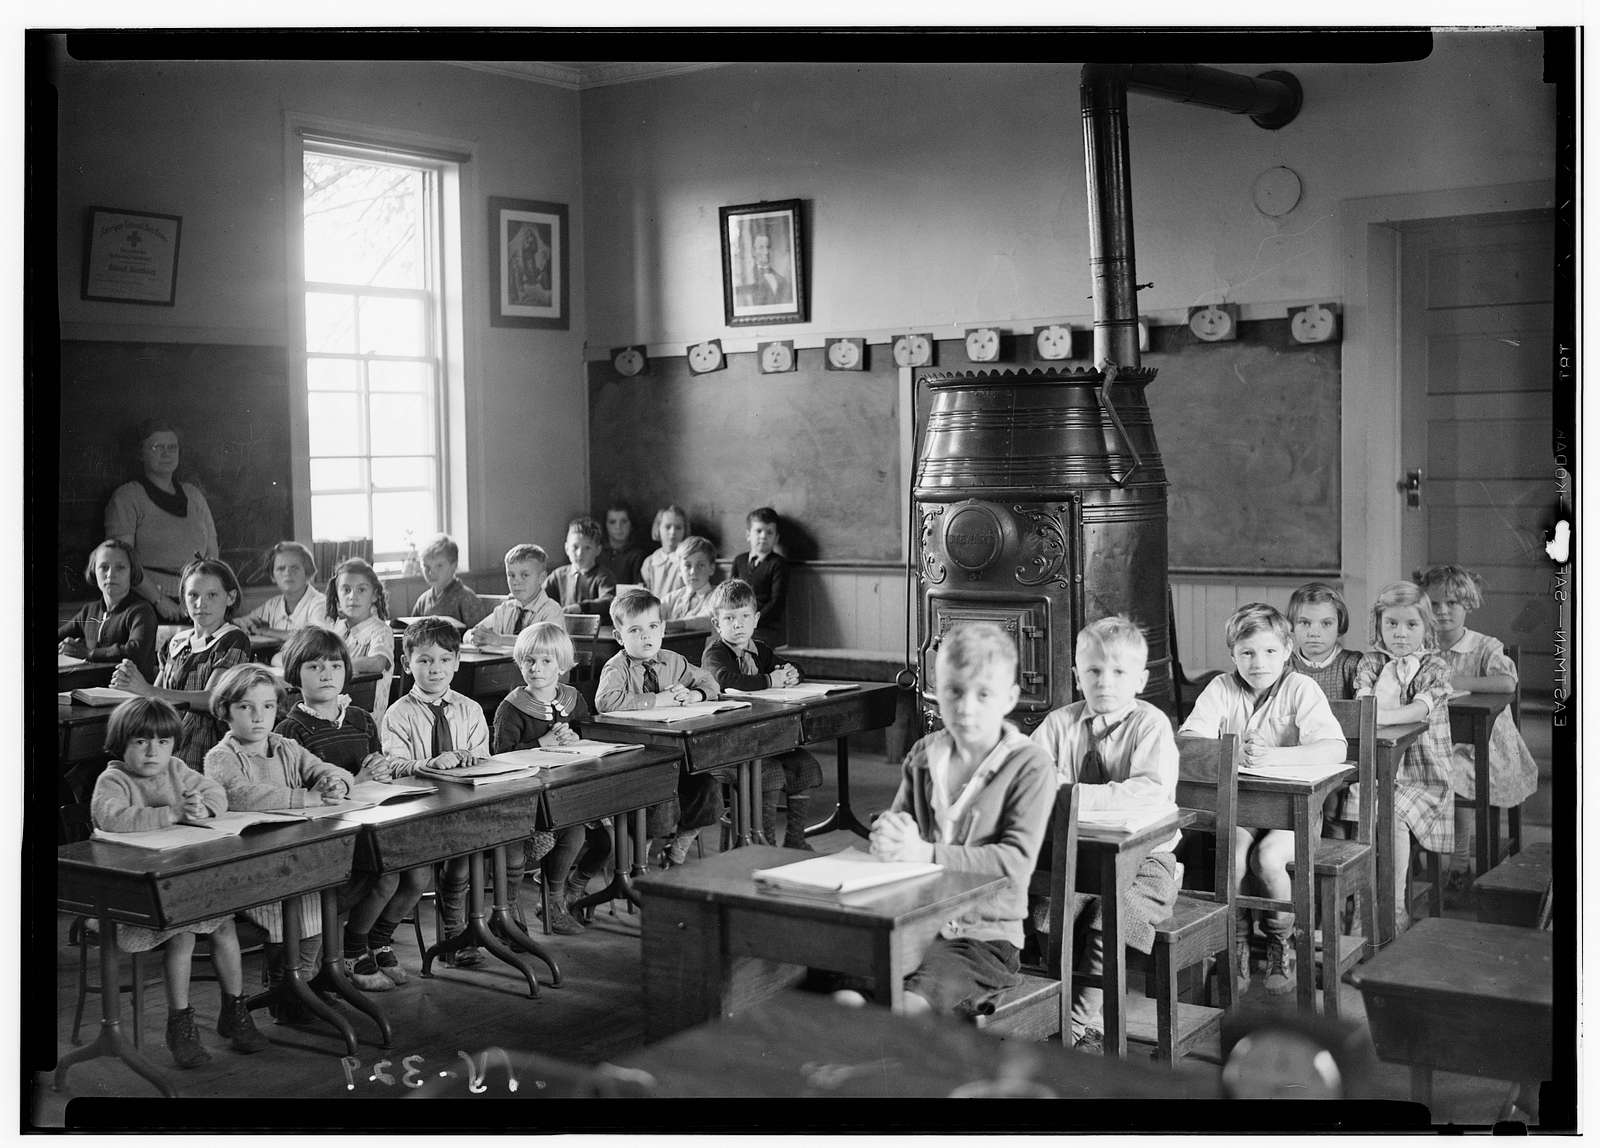 District School Number 1, North Greenbush Road, Troy, Rensselaer County, NY